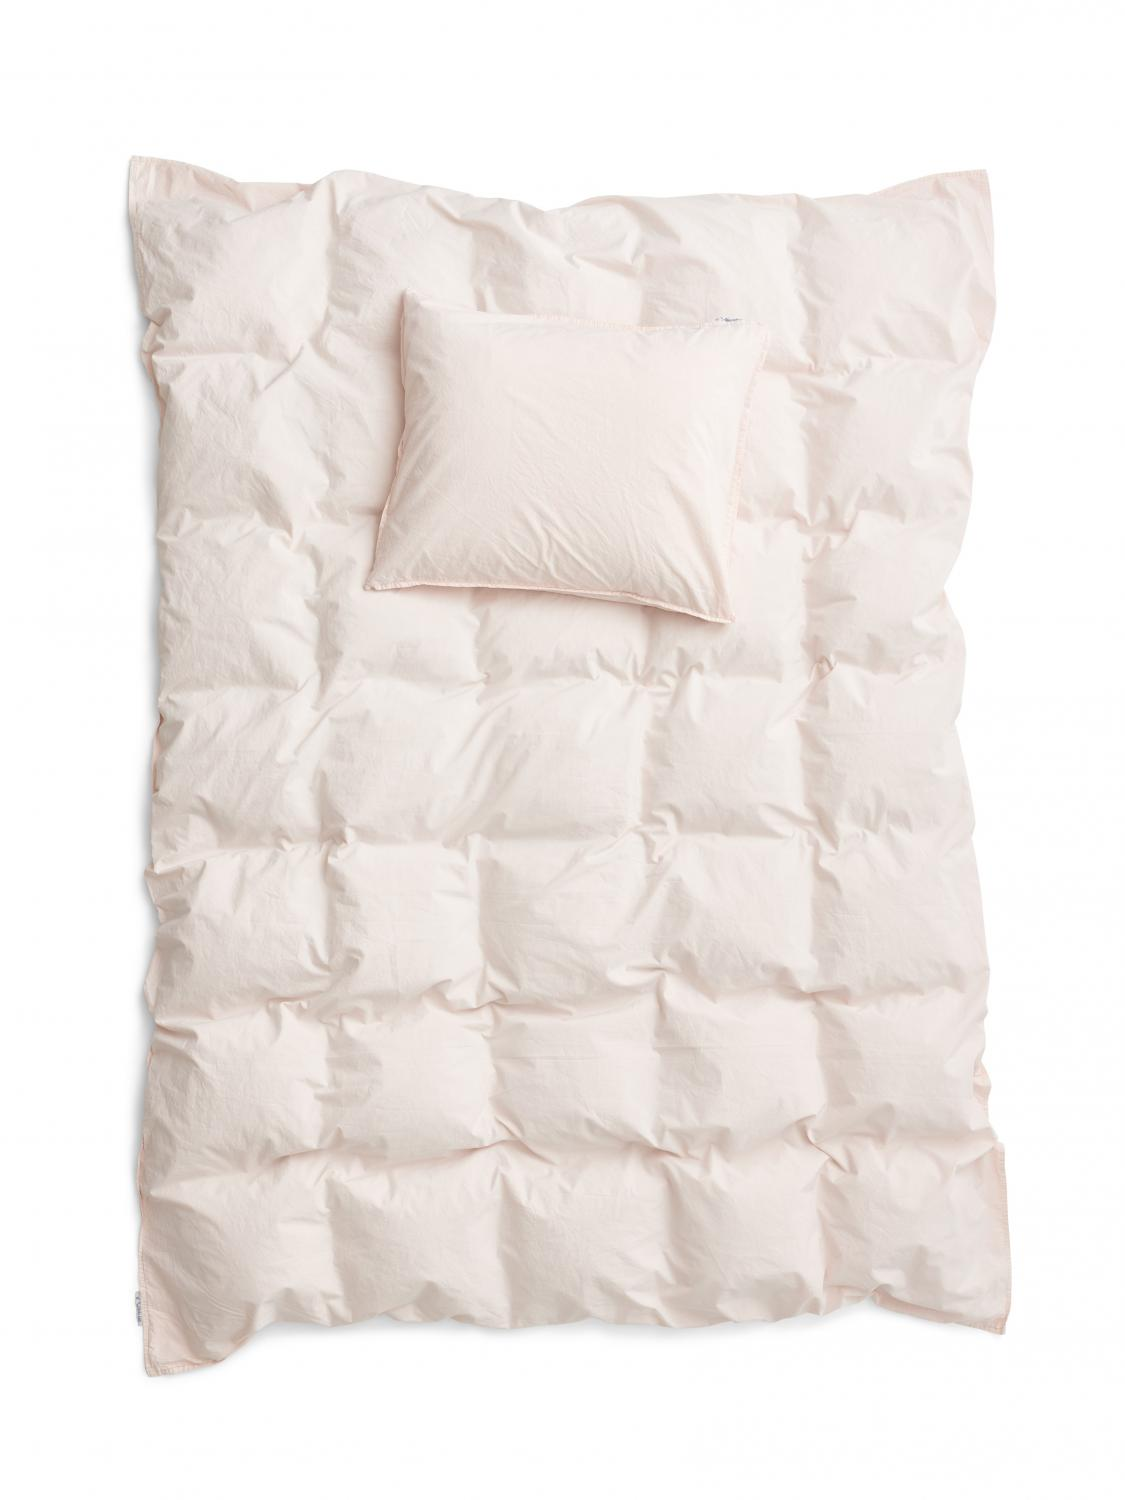 Duvet Cover Set Crinkle New Pale Pink